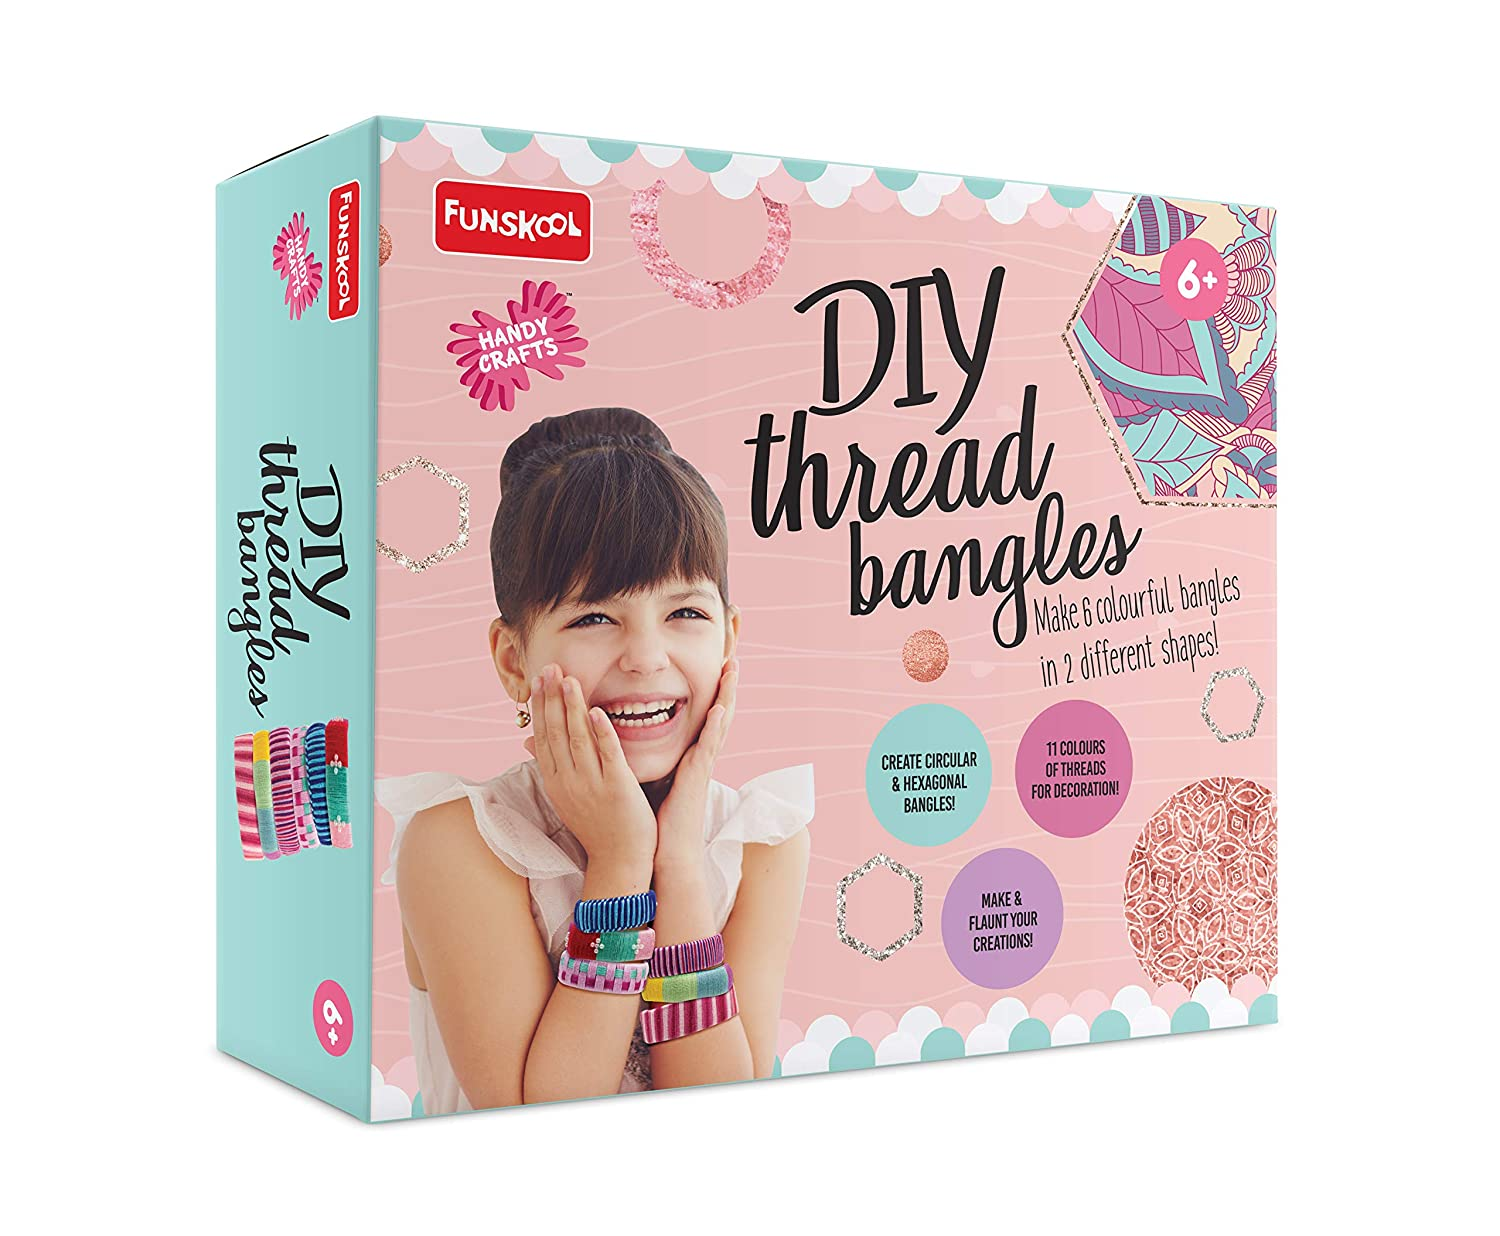 Funskool Handy Crafts DIY Thread Bangles